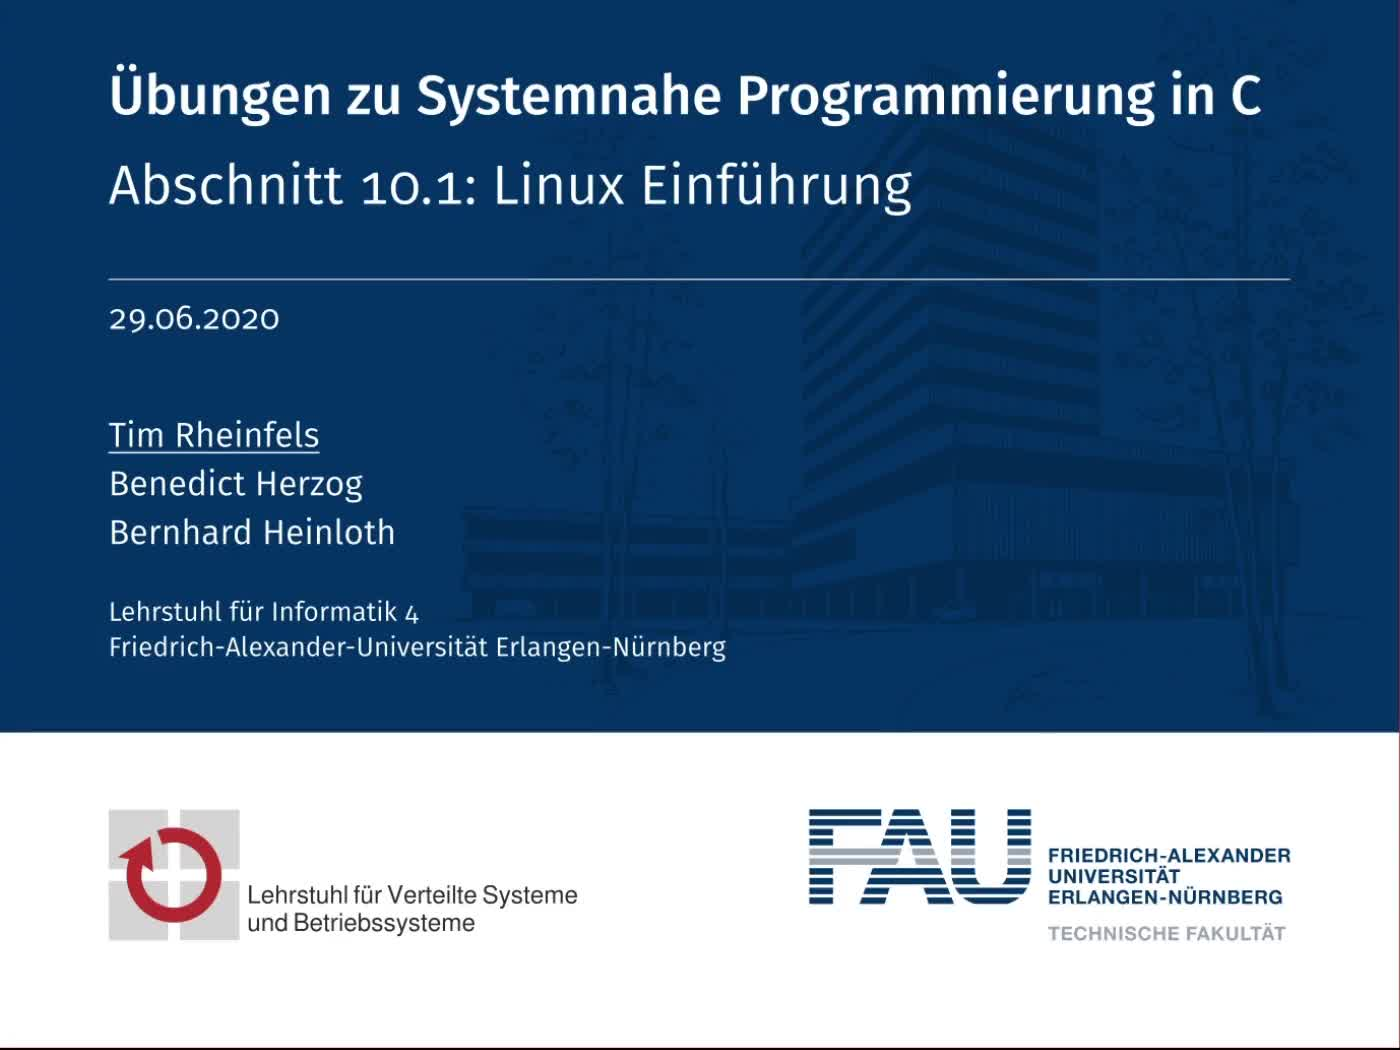 10.1: Linux Einführung preview image